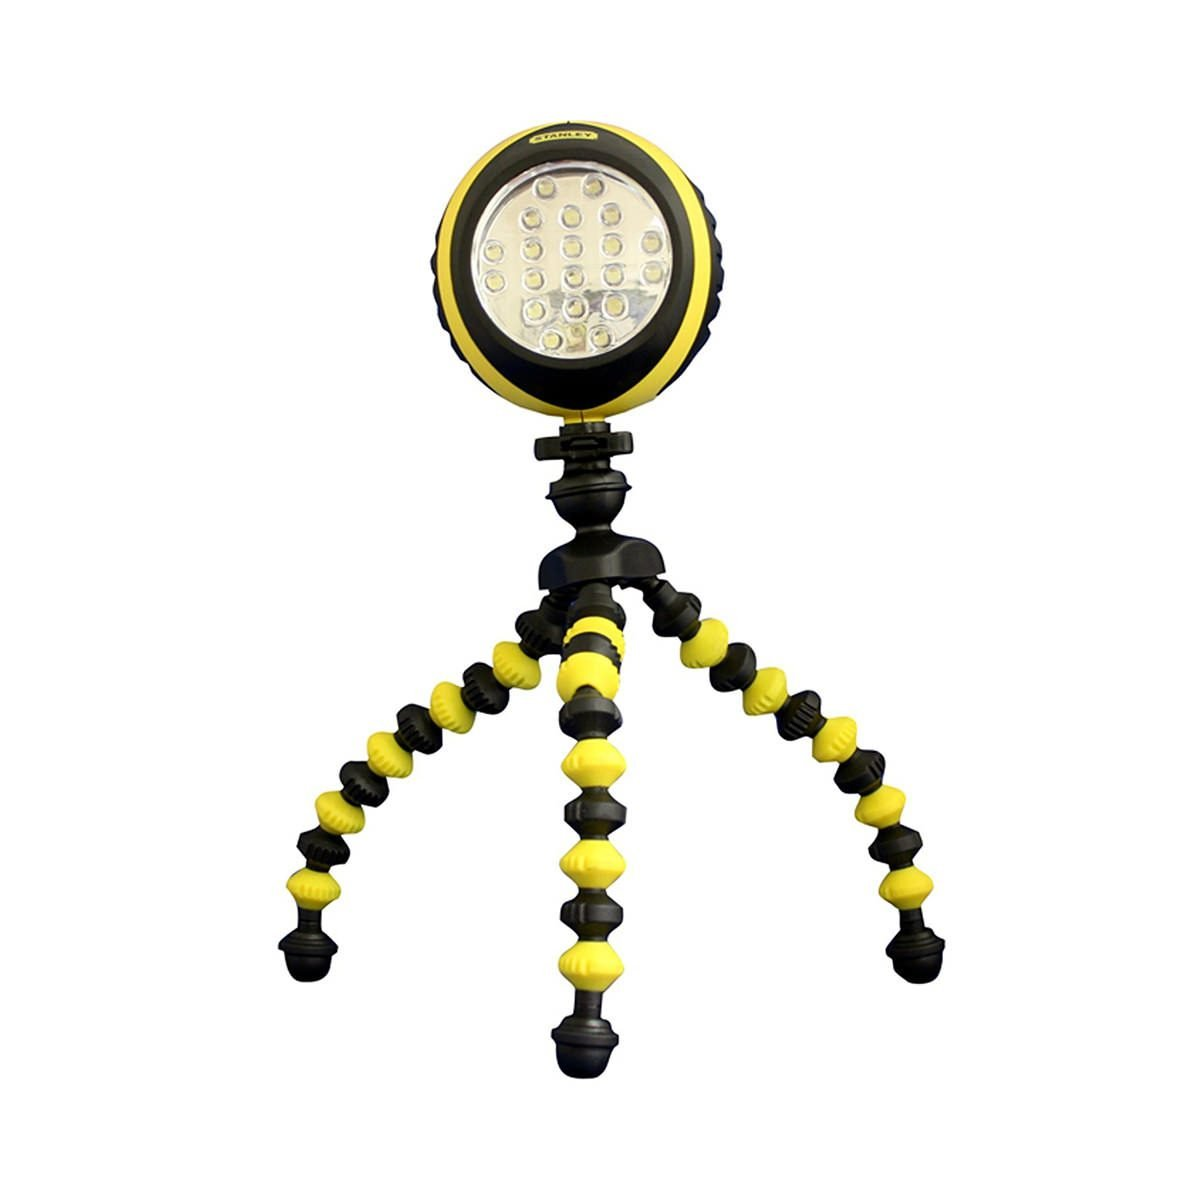 Stanley SquidBrite Flexible LED Work Light with Magnetic Back